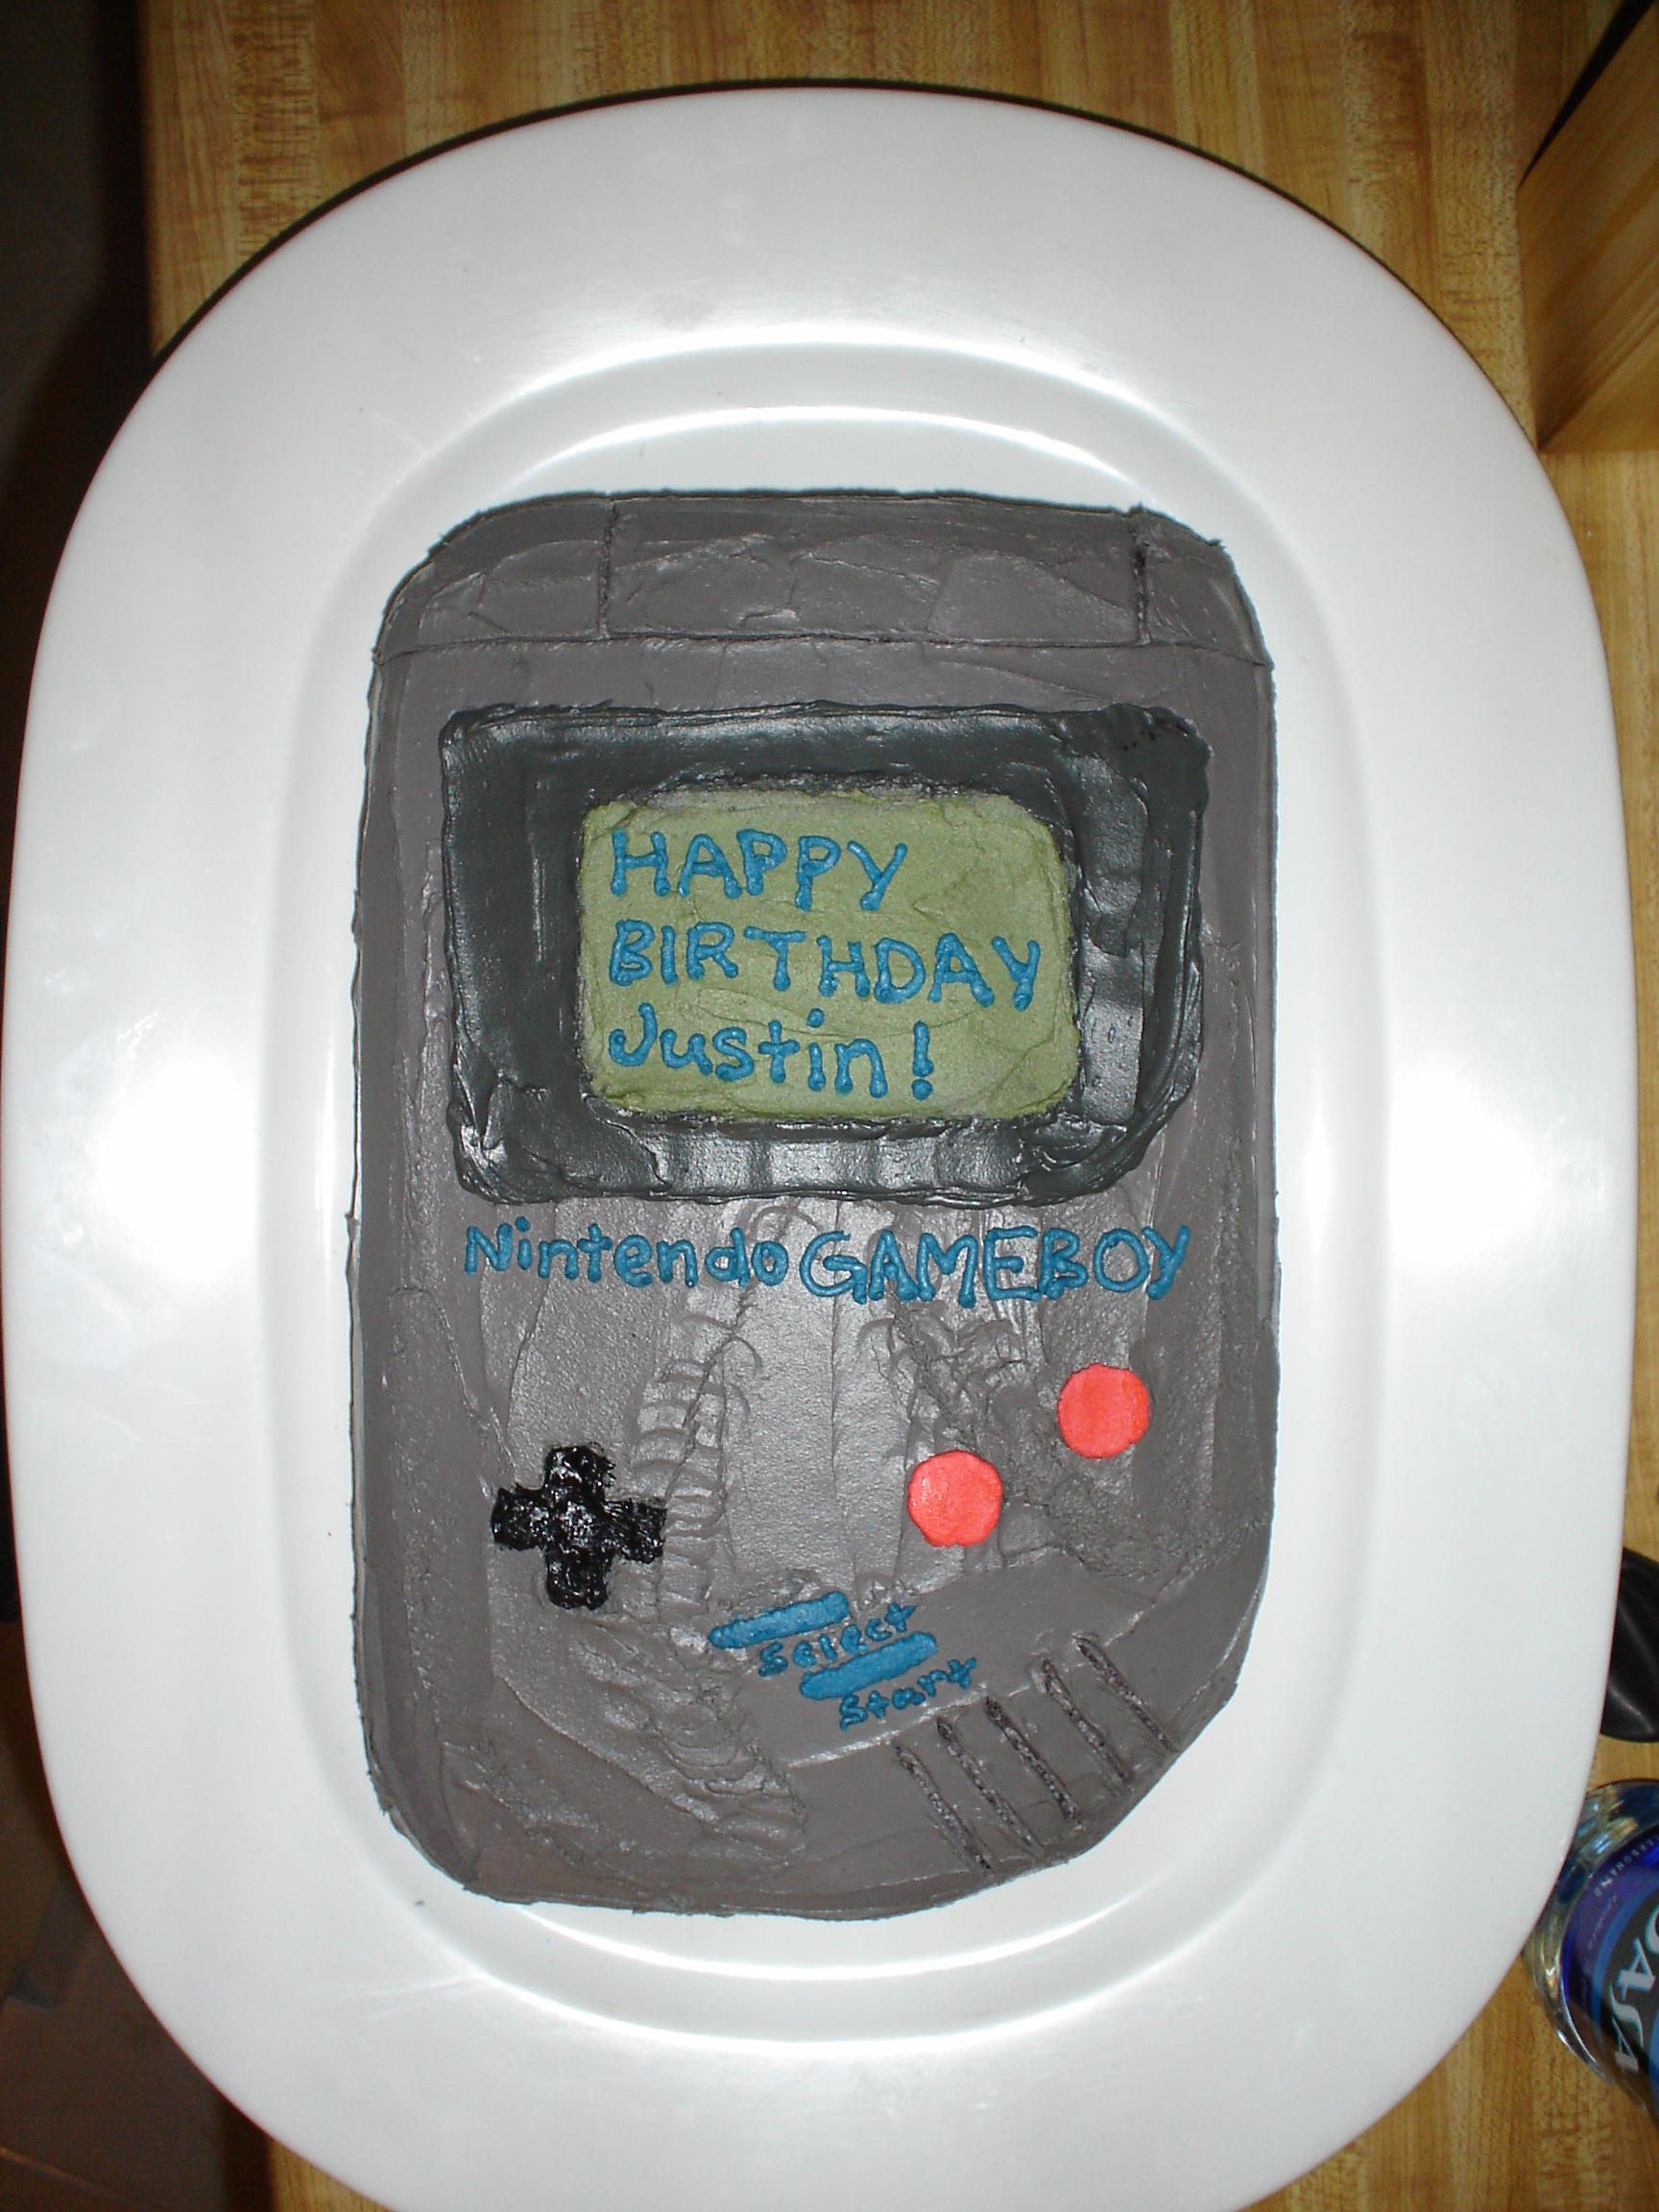 GameBoy Cake by pateachoux